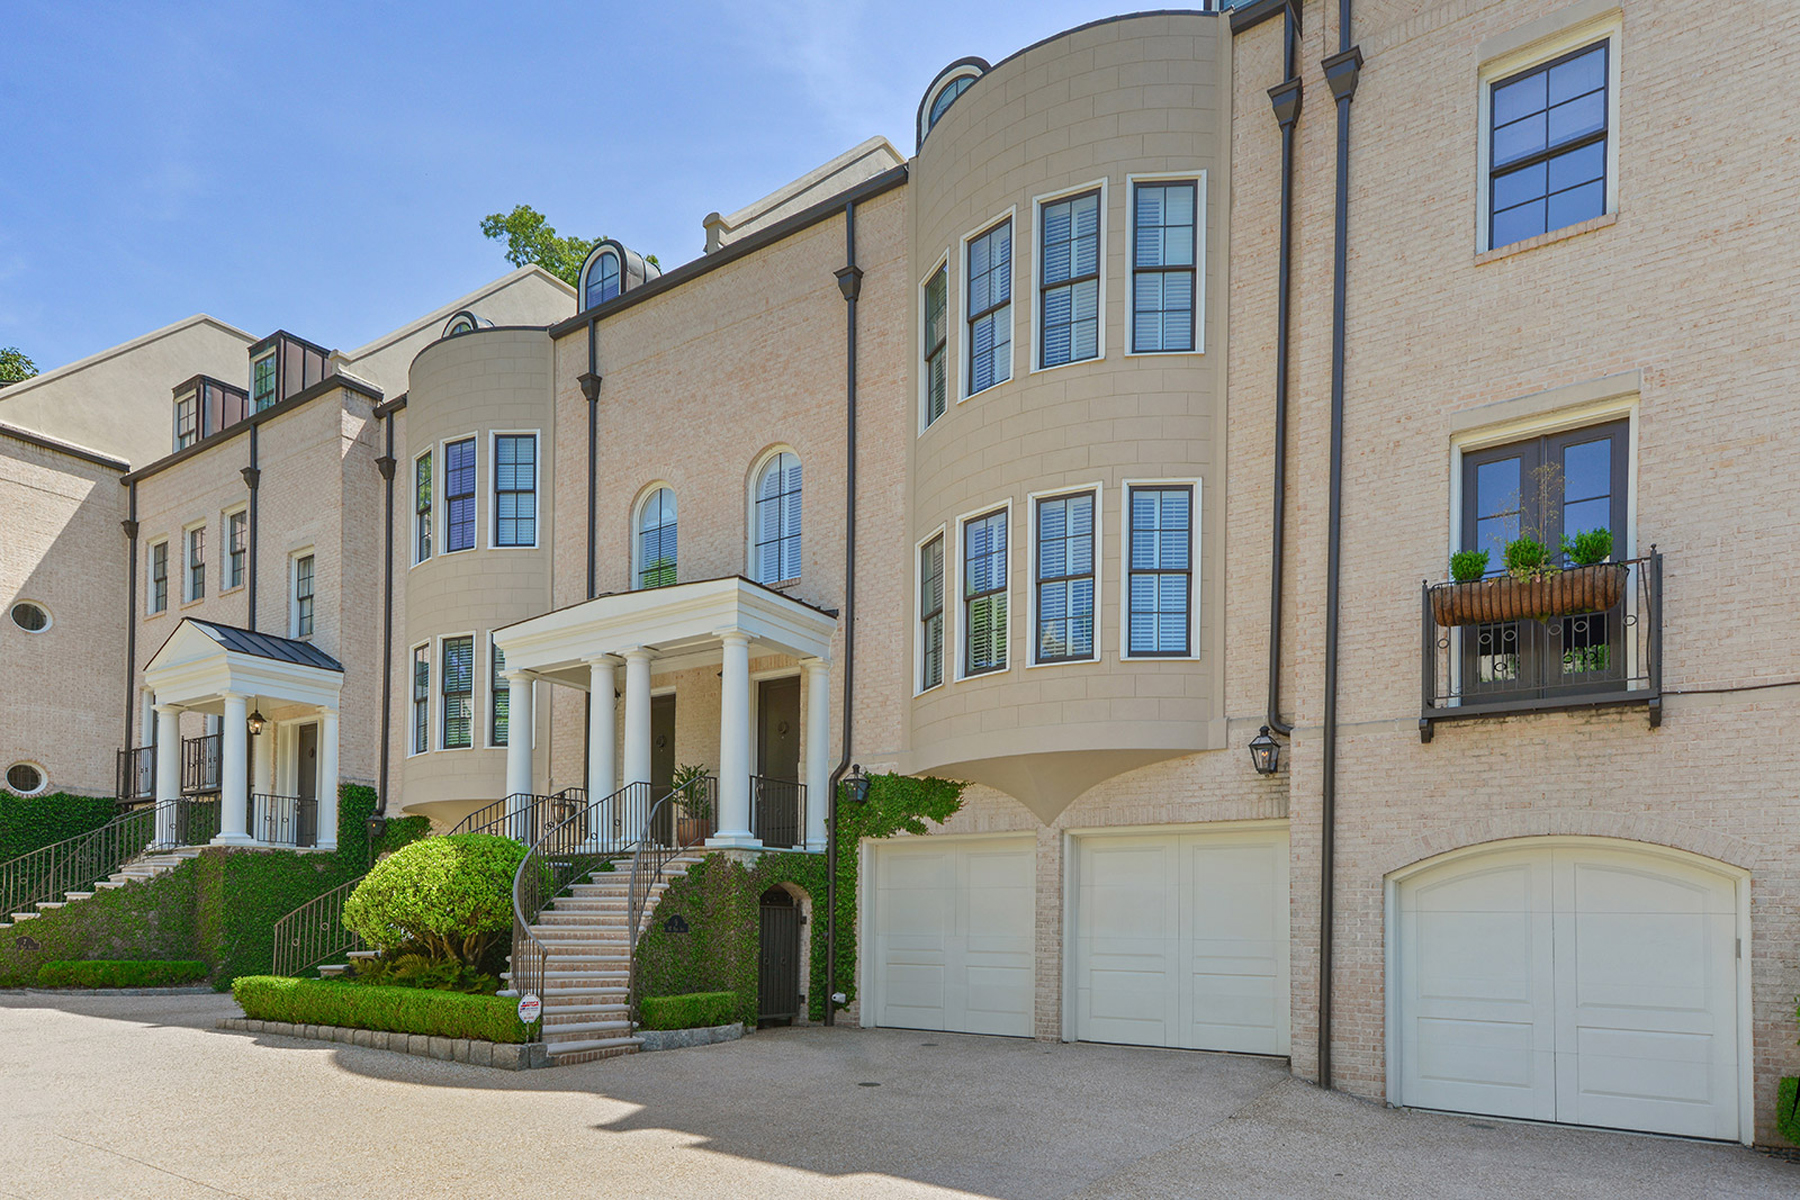 Townhouse for Sale at Spacious, Elegant and Ideally Located Townhome in the Heart of Buckhead 92 Old Ivy Rd 9 Atlanta, Georgia 30342 United States